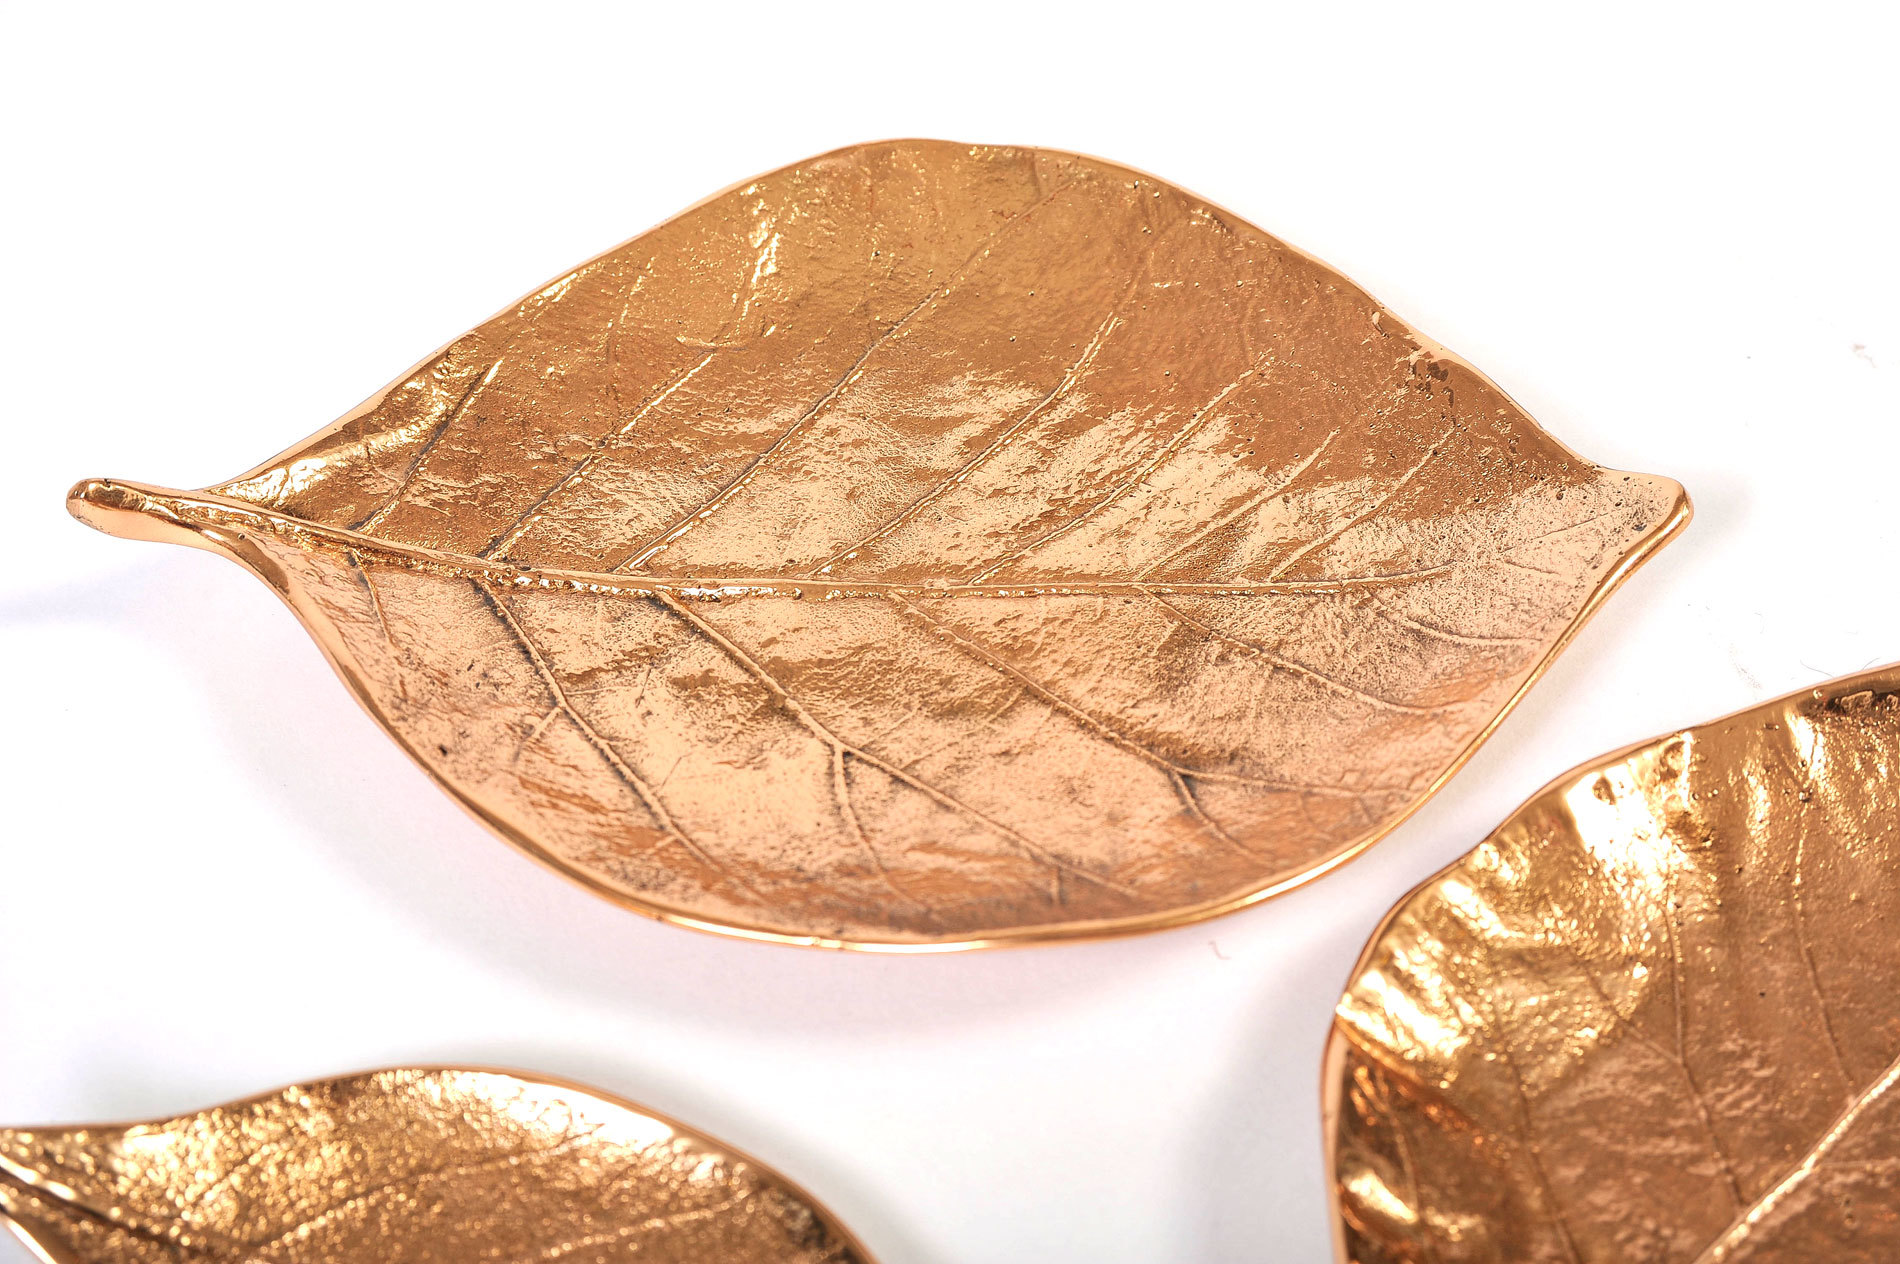 Set Of 3 Leaf Bowls 06